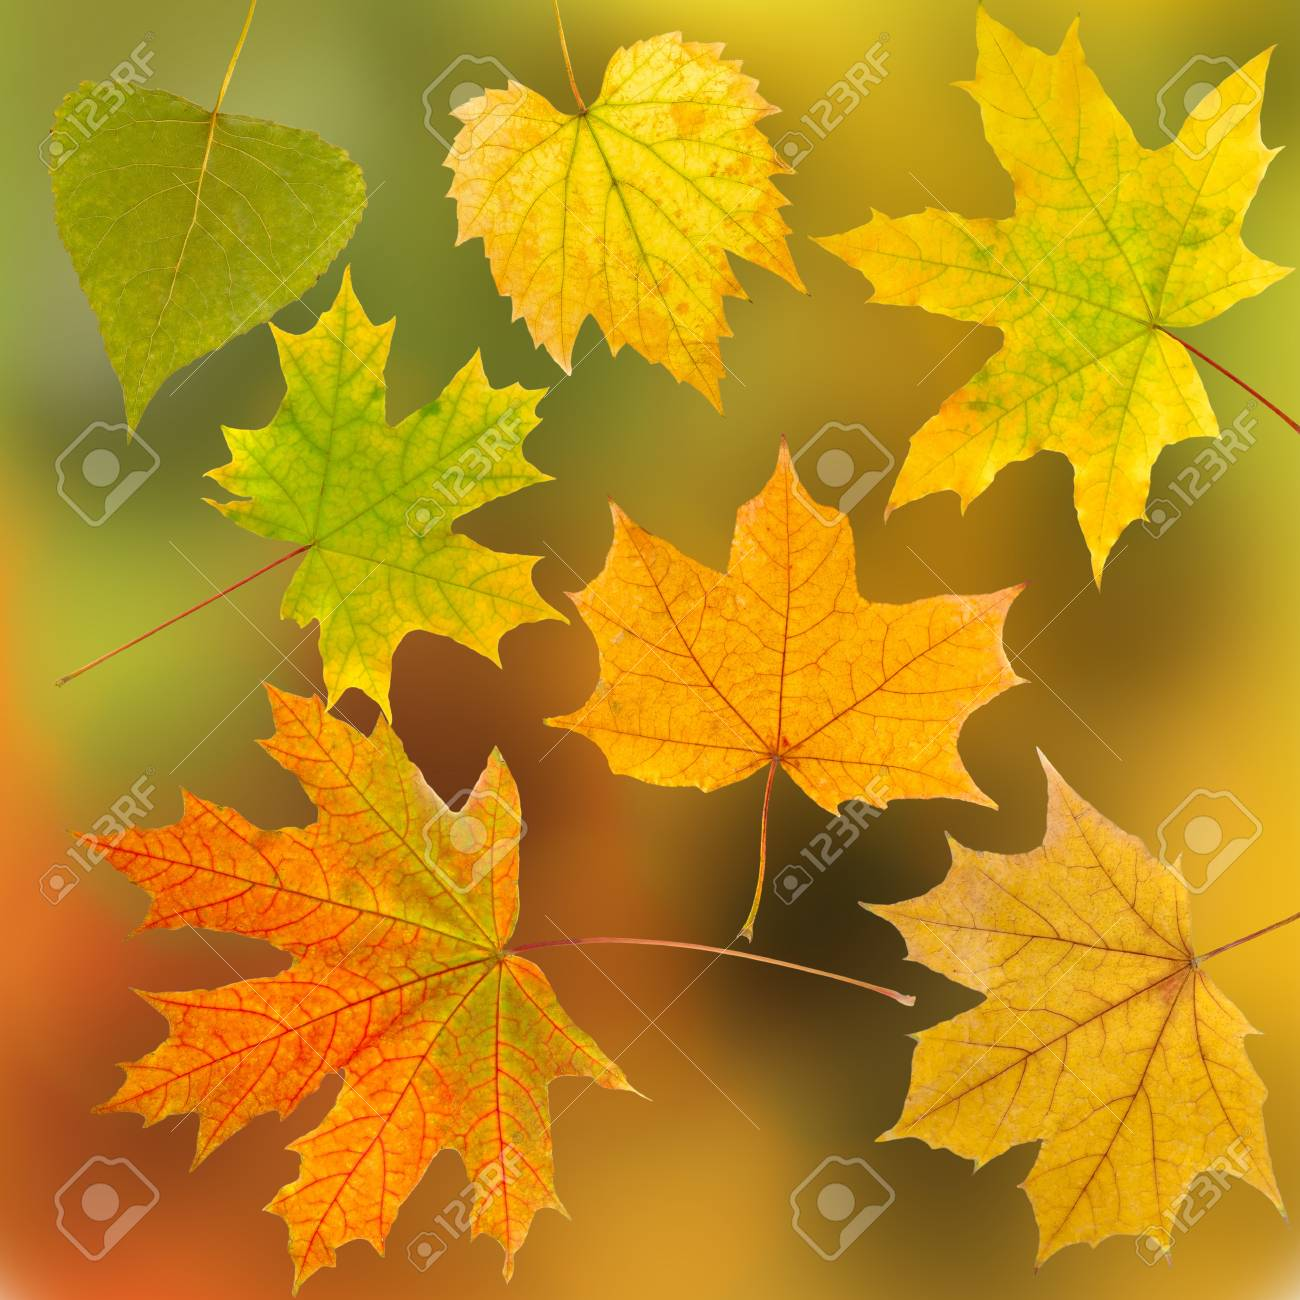 image of autumn leaves as a background Stock Photo - 20583379